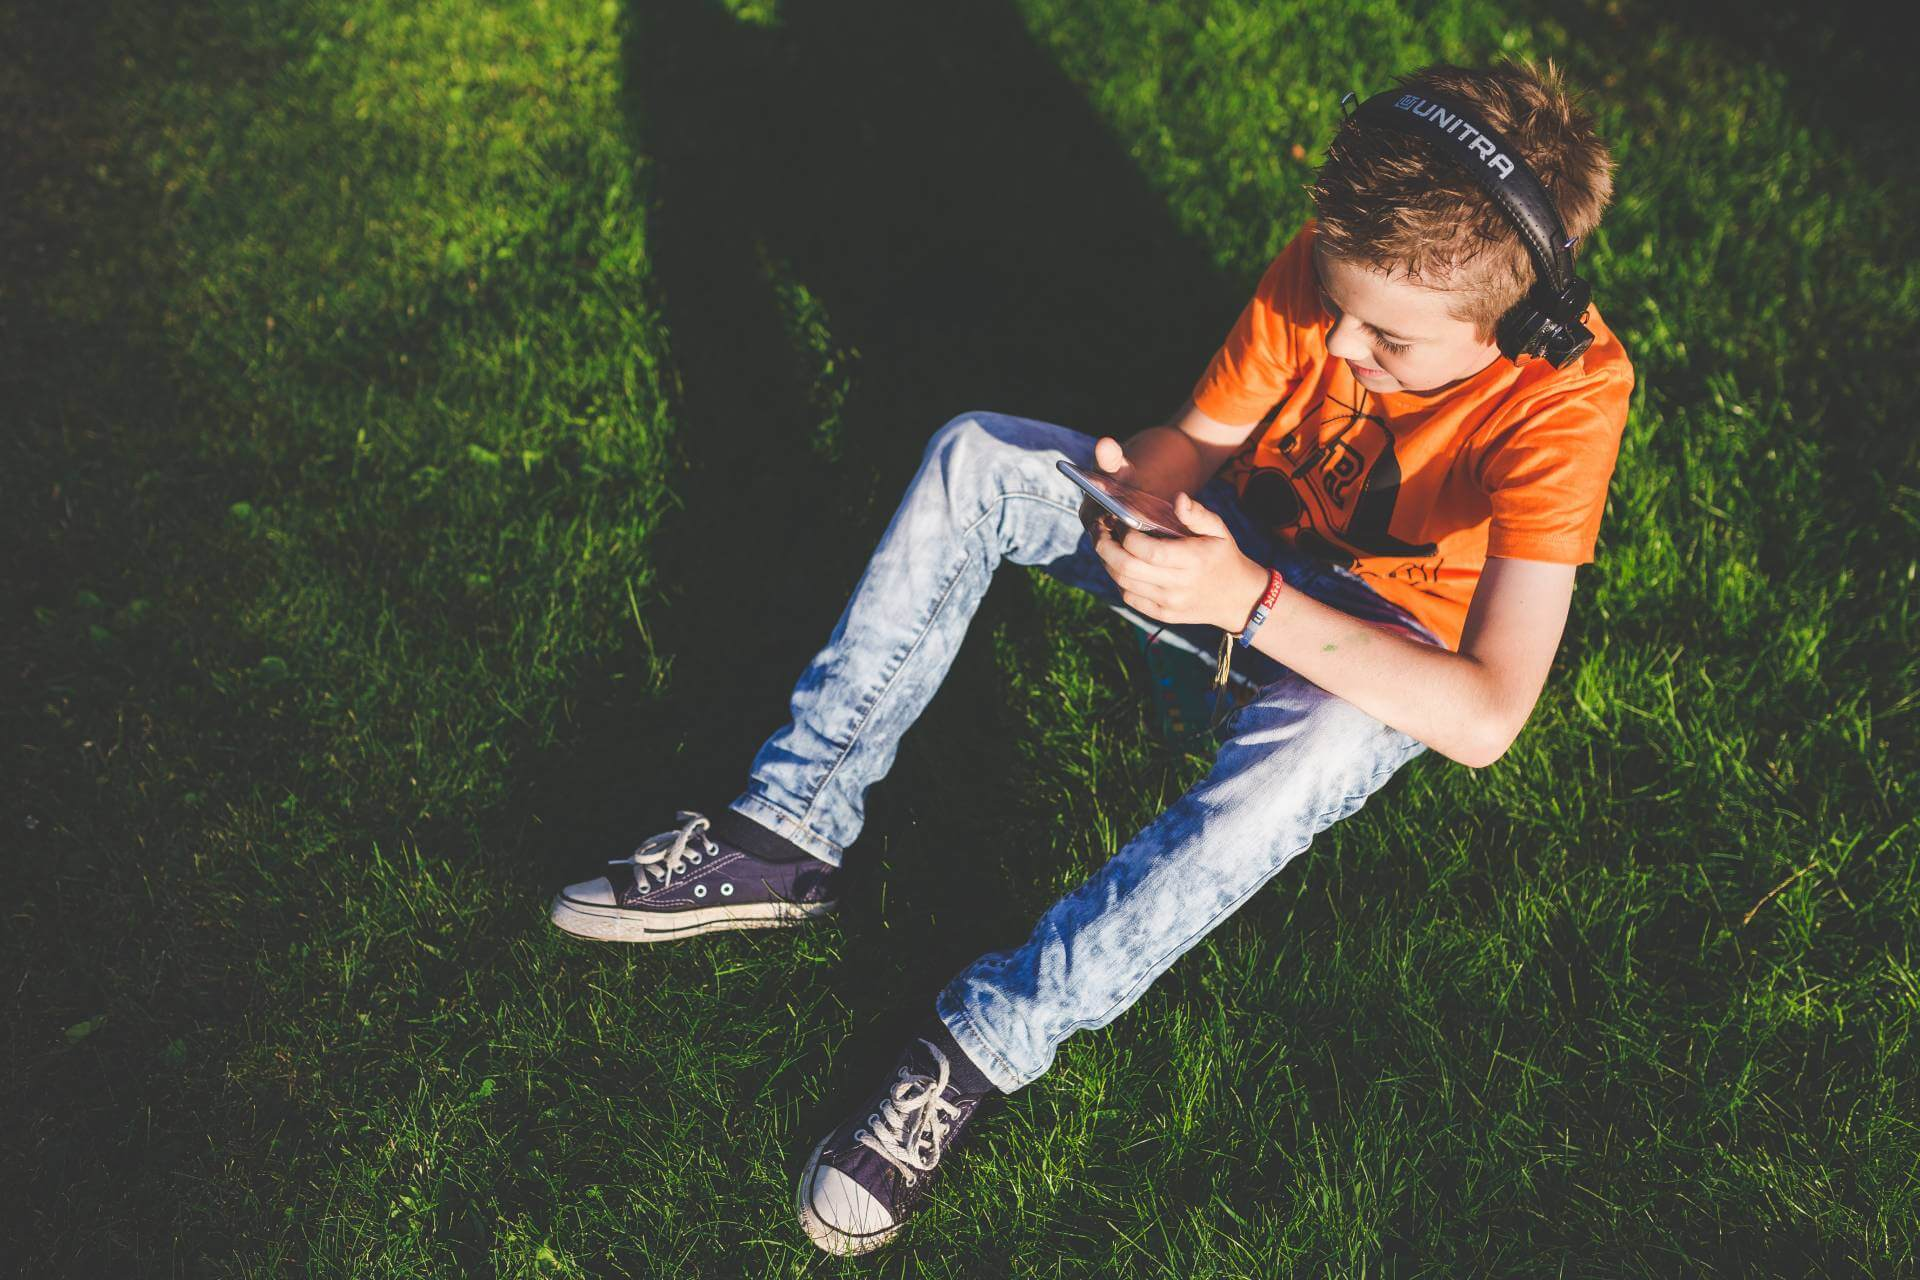 With a quarter of primary school children having sent or received indecent images or explicit messages, should we be talking to our children earlier?